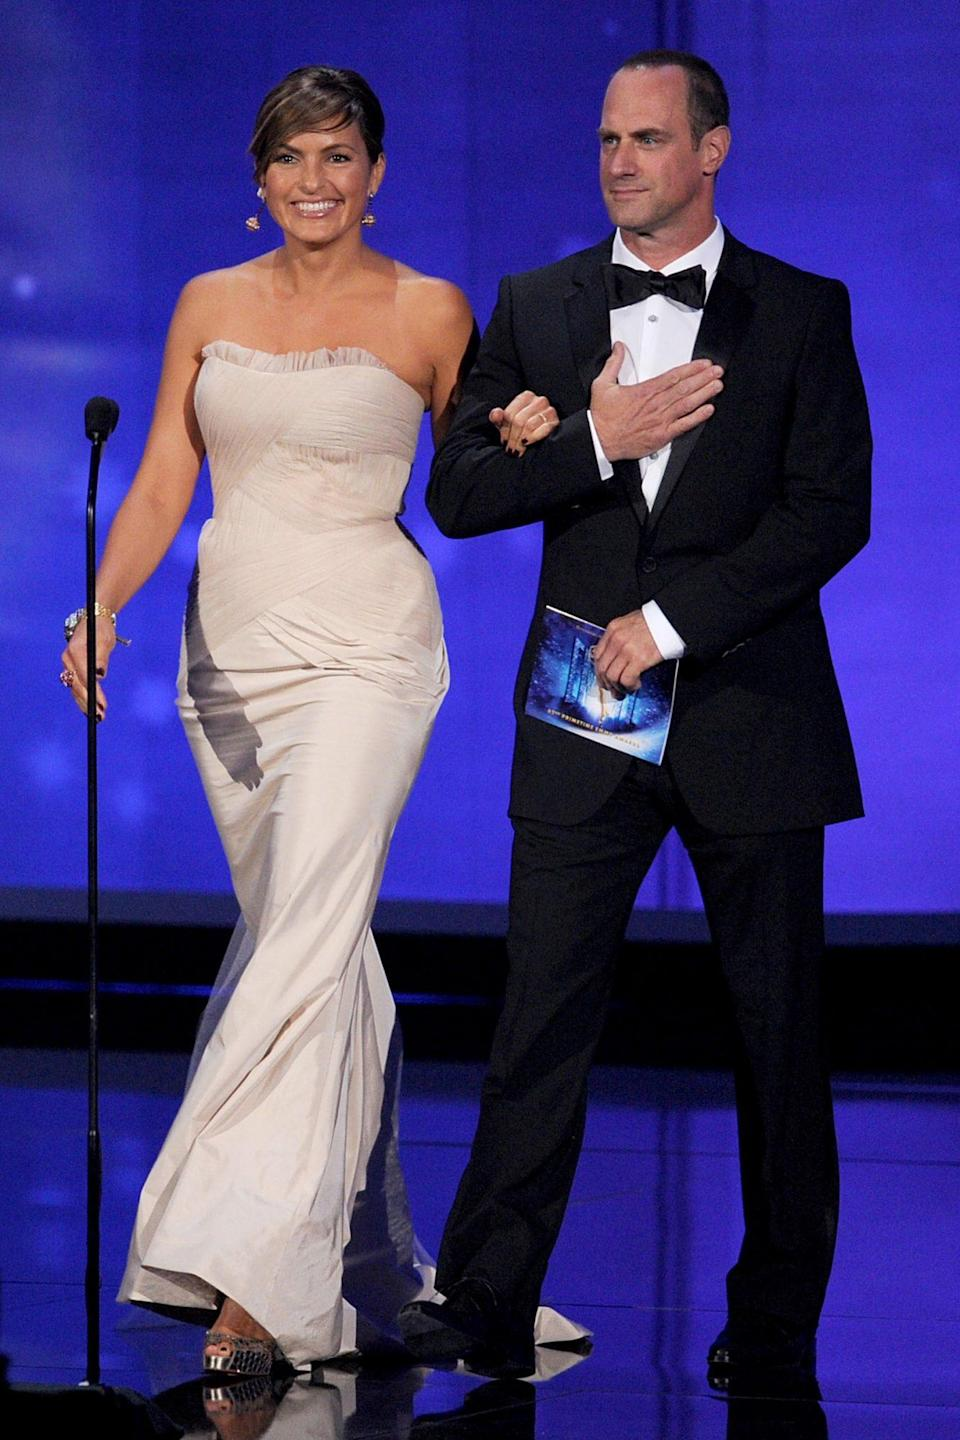 <p>In 2010, the pair looked gorgeous while presenting at 62nd Annual Primetime Emmy Awards. Hargitay has been nominated eight times, winning once in 2006. Meloni earned himself a nod in 2006 for outstanding lead actor in a drama series. </p>